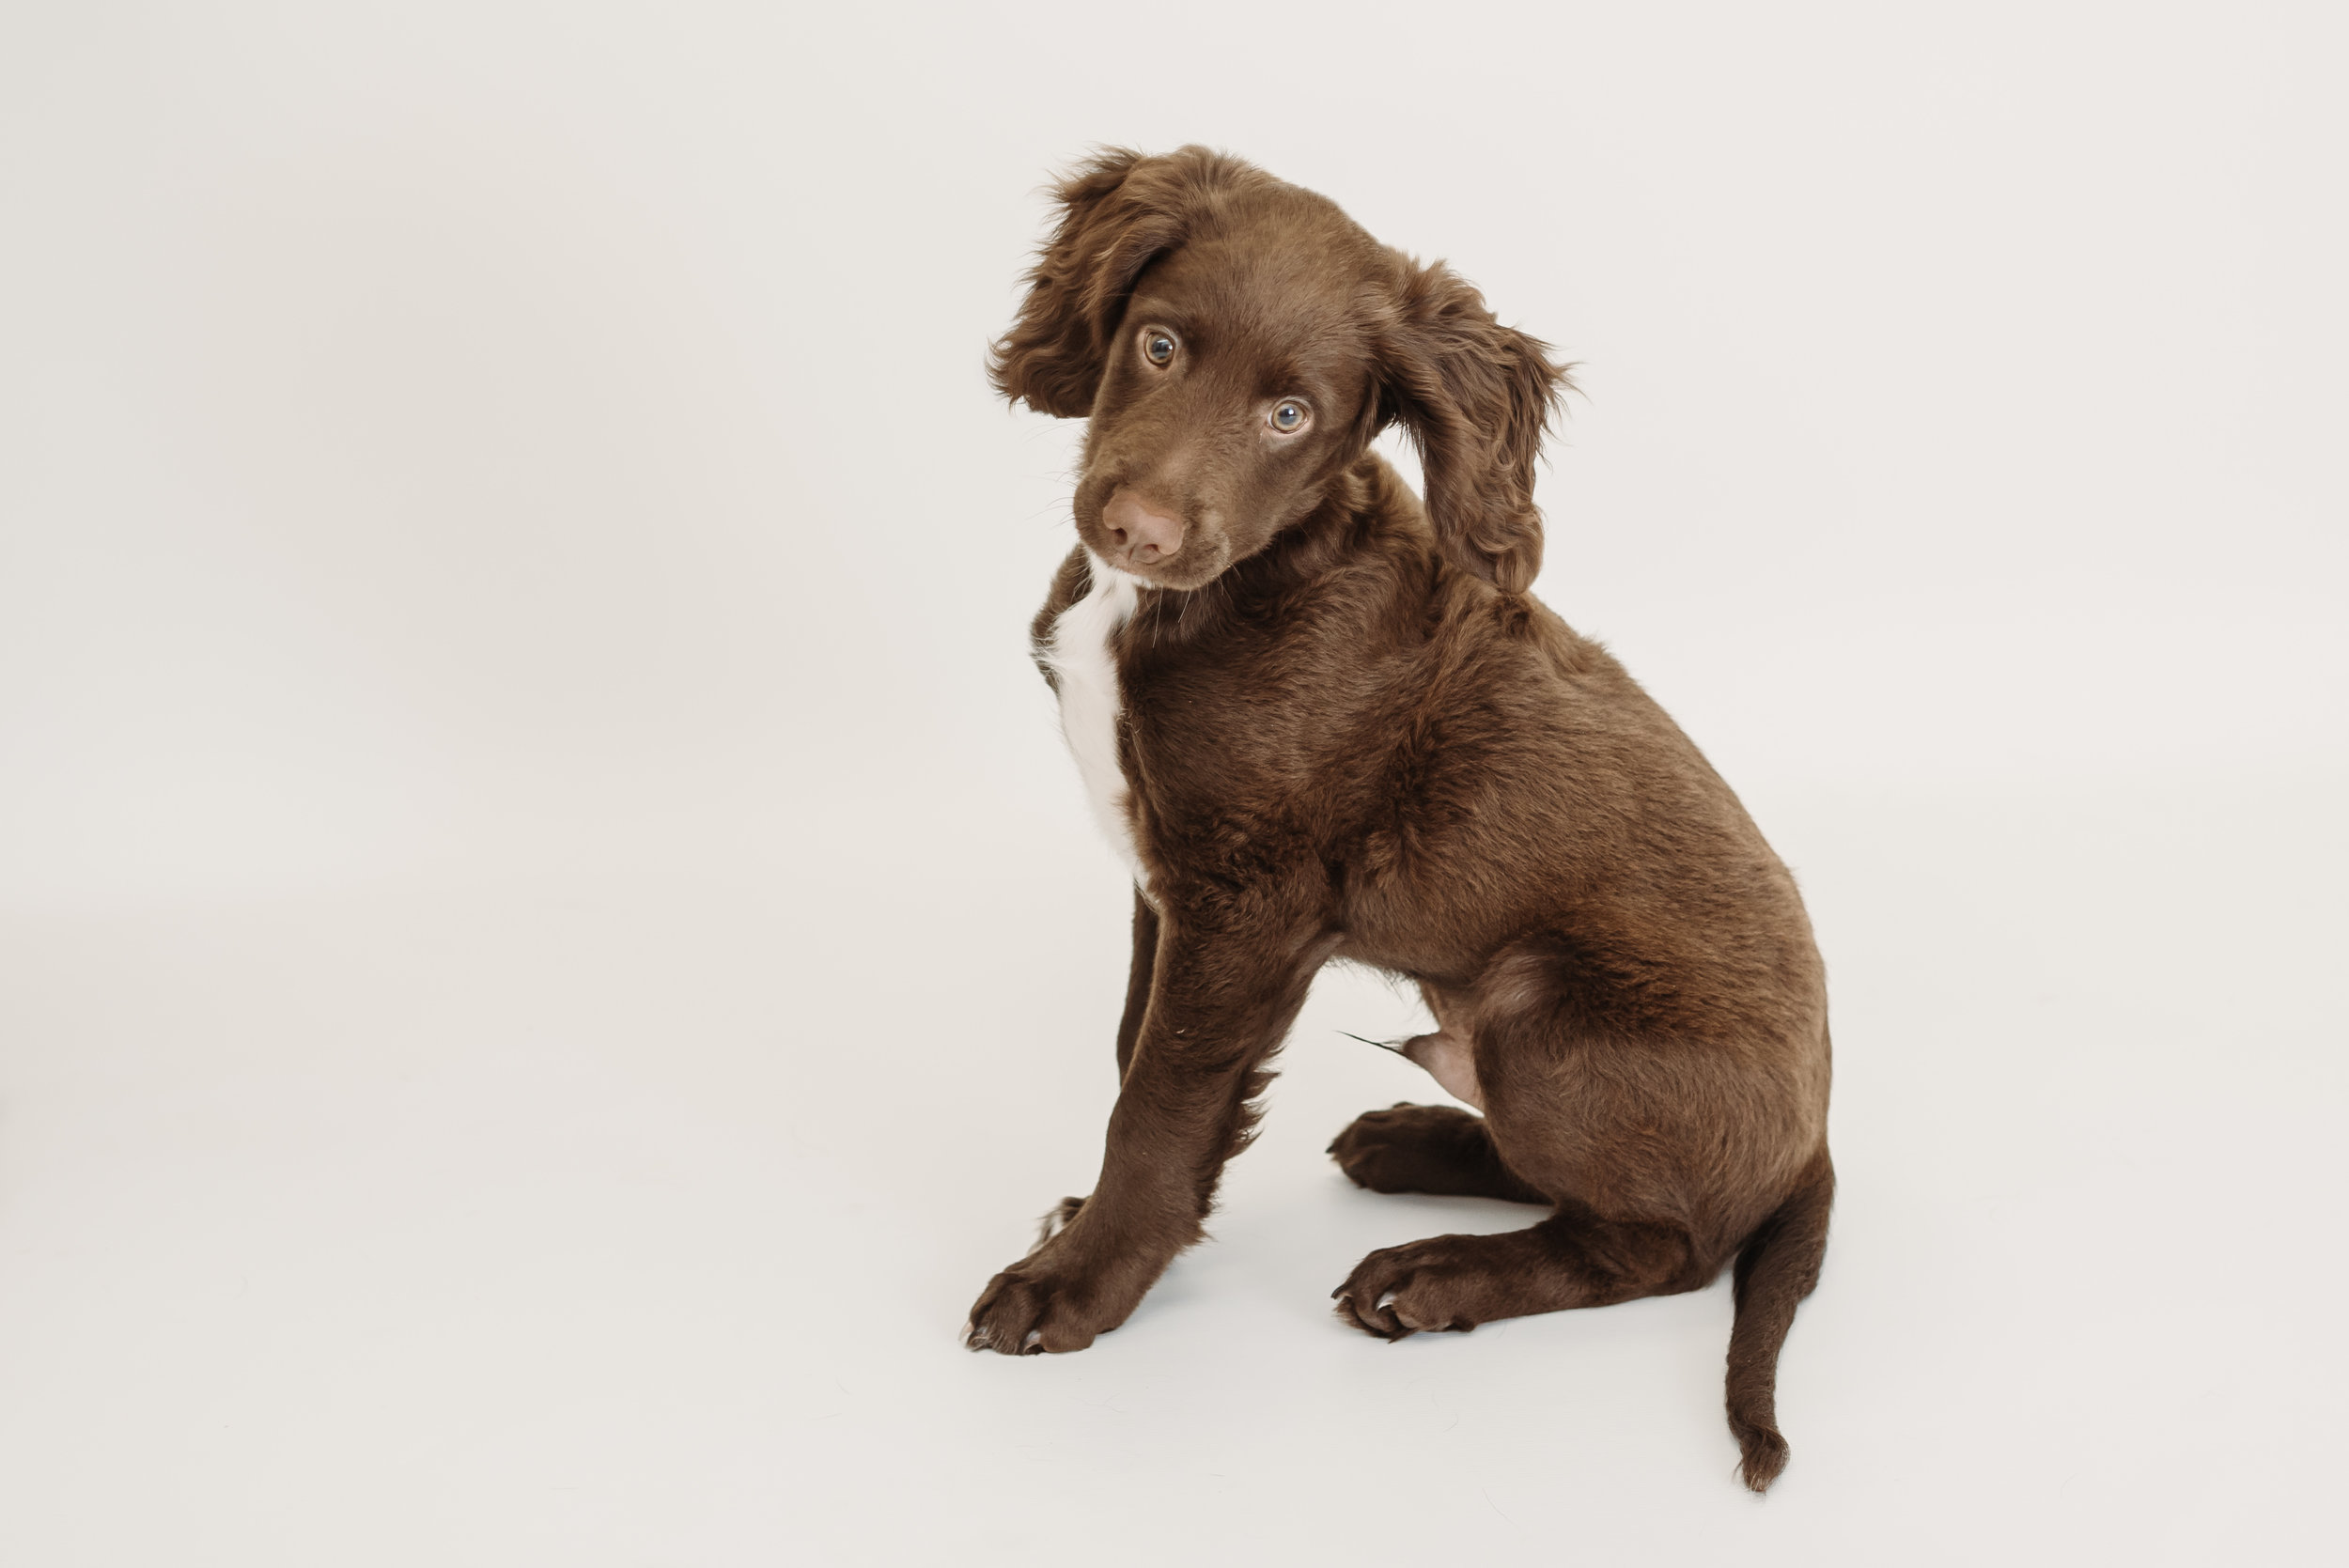 Sprocker photo shoot - Clitheroe